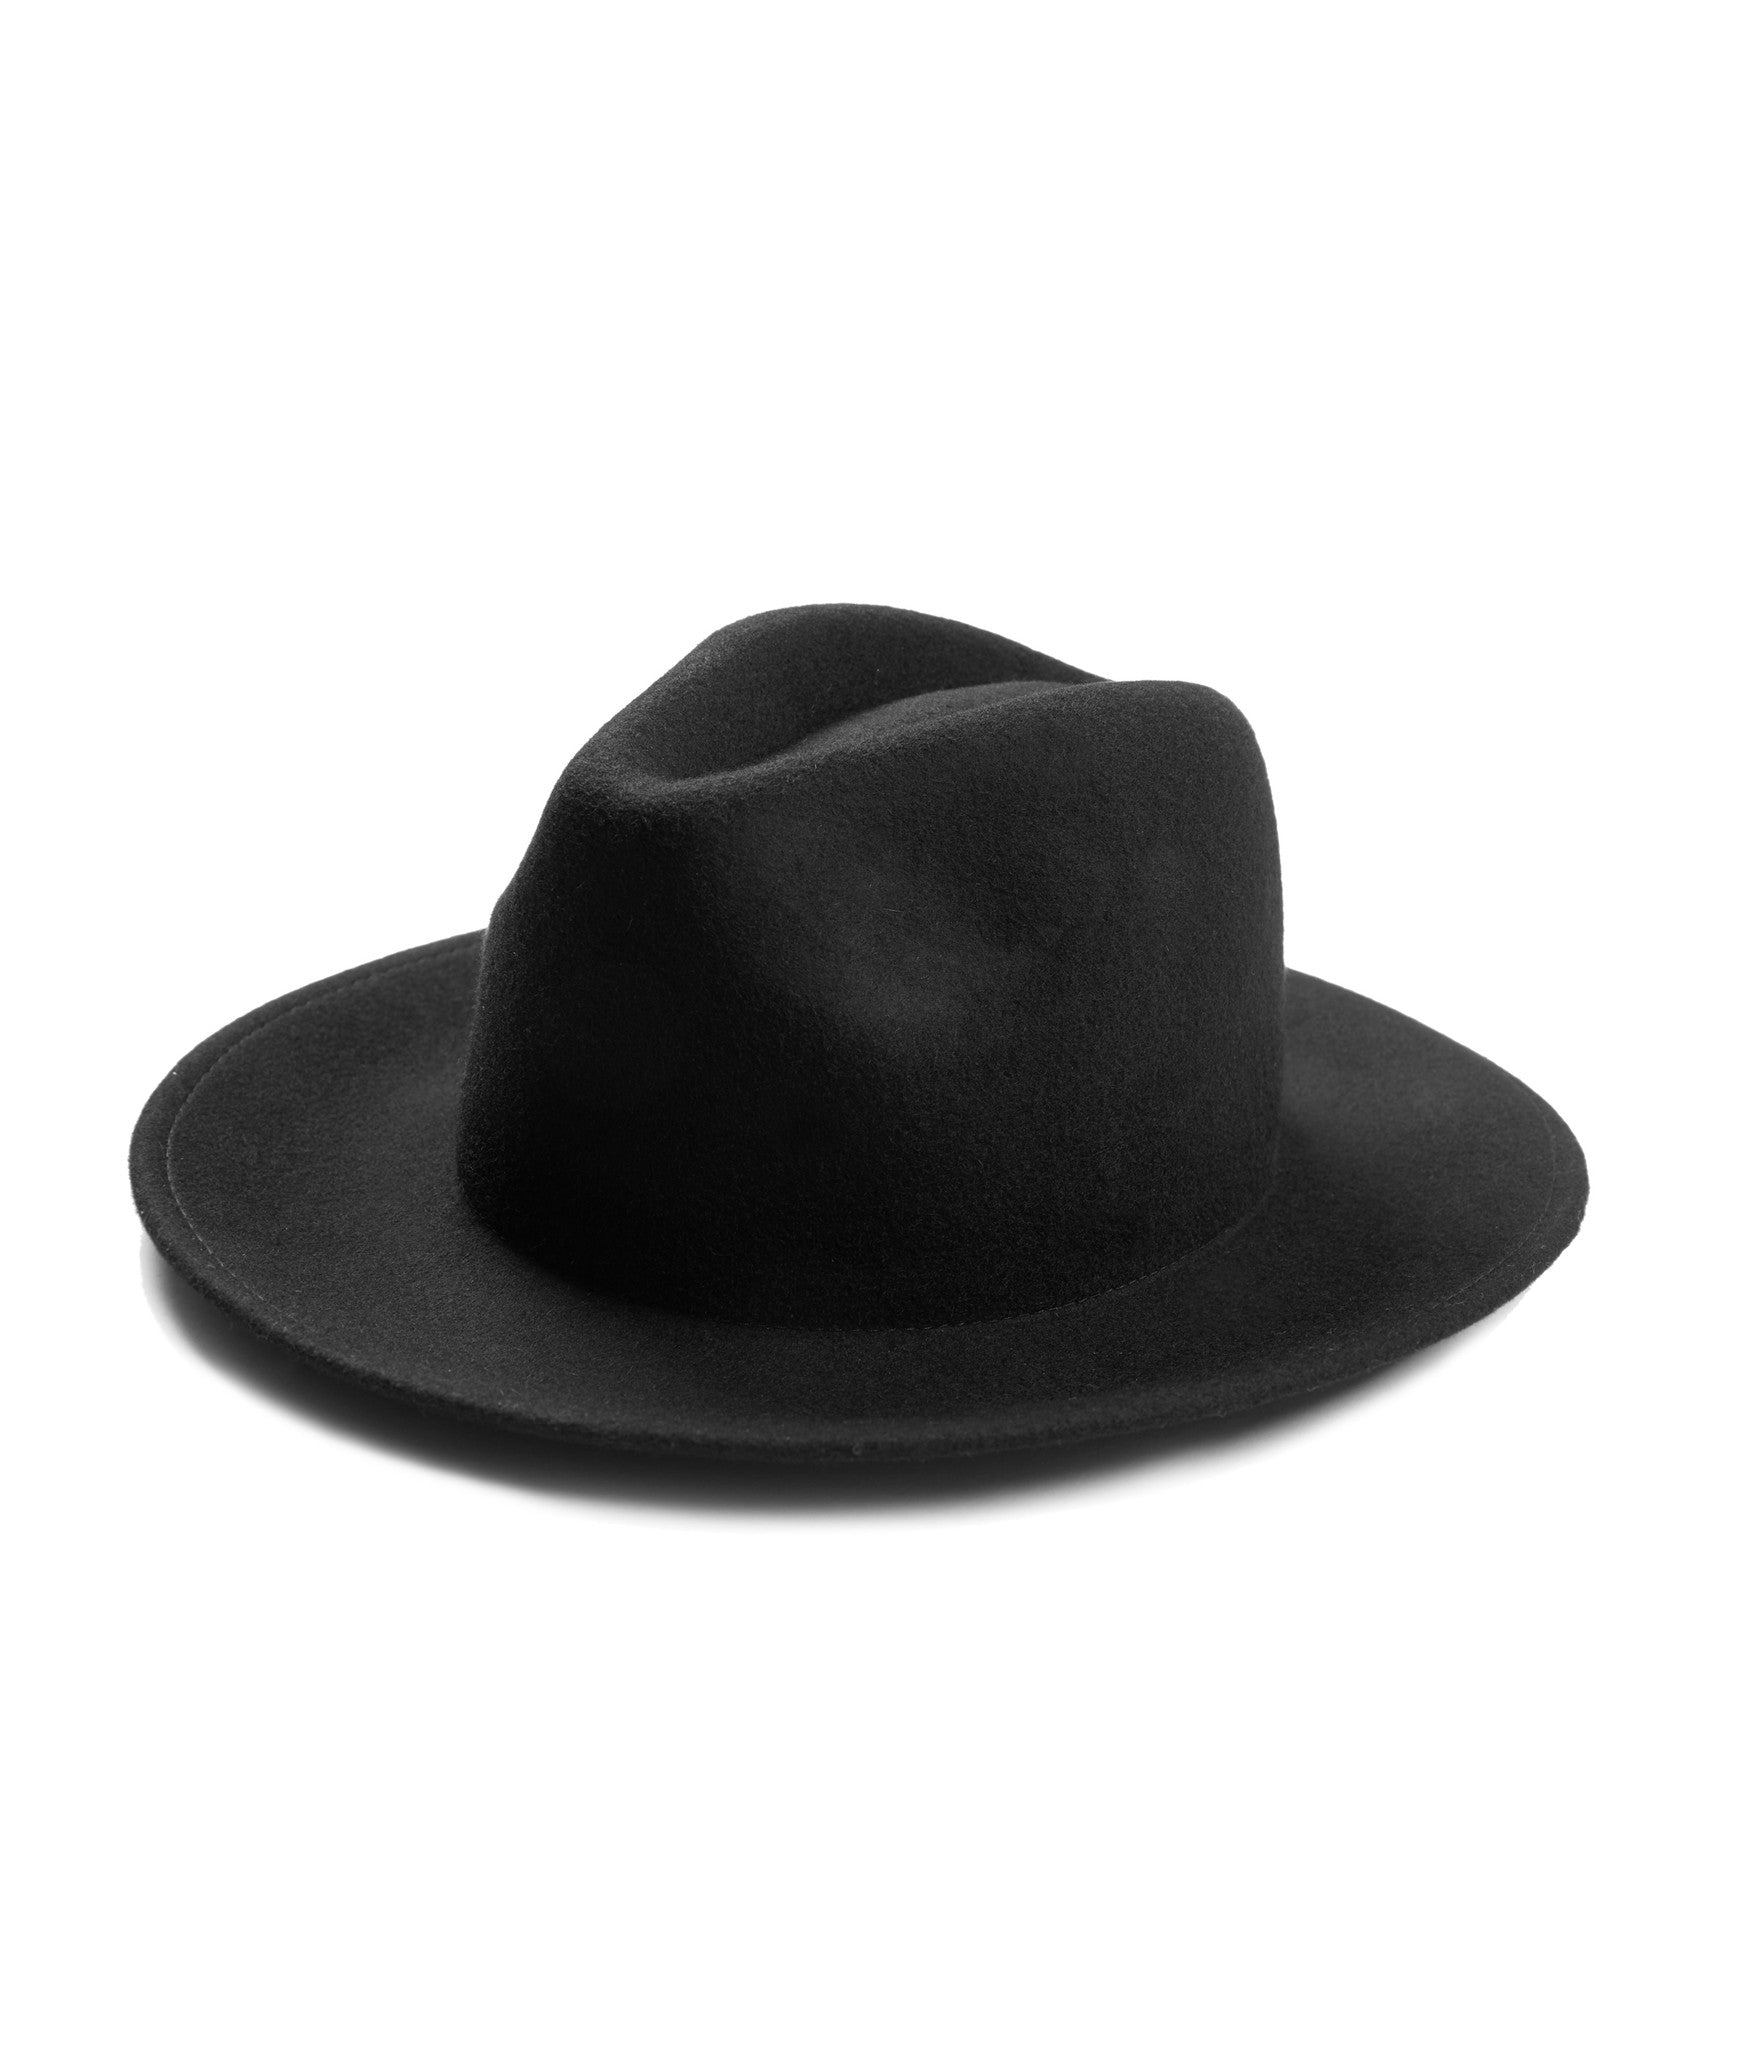 Dillinger Fedora Hat - Black - underated london - underatedco - 2